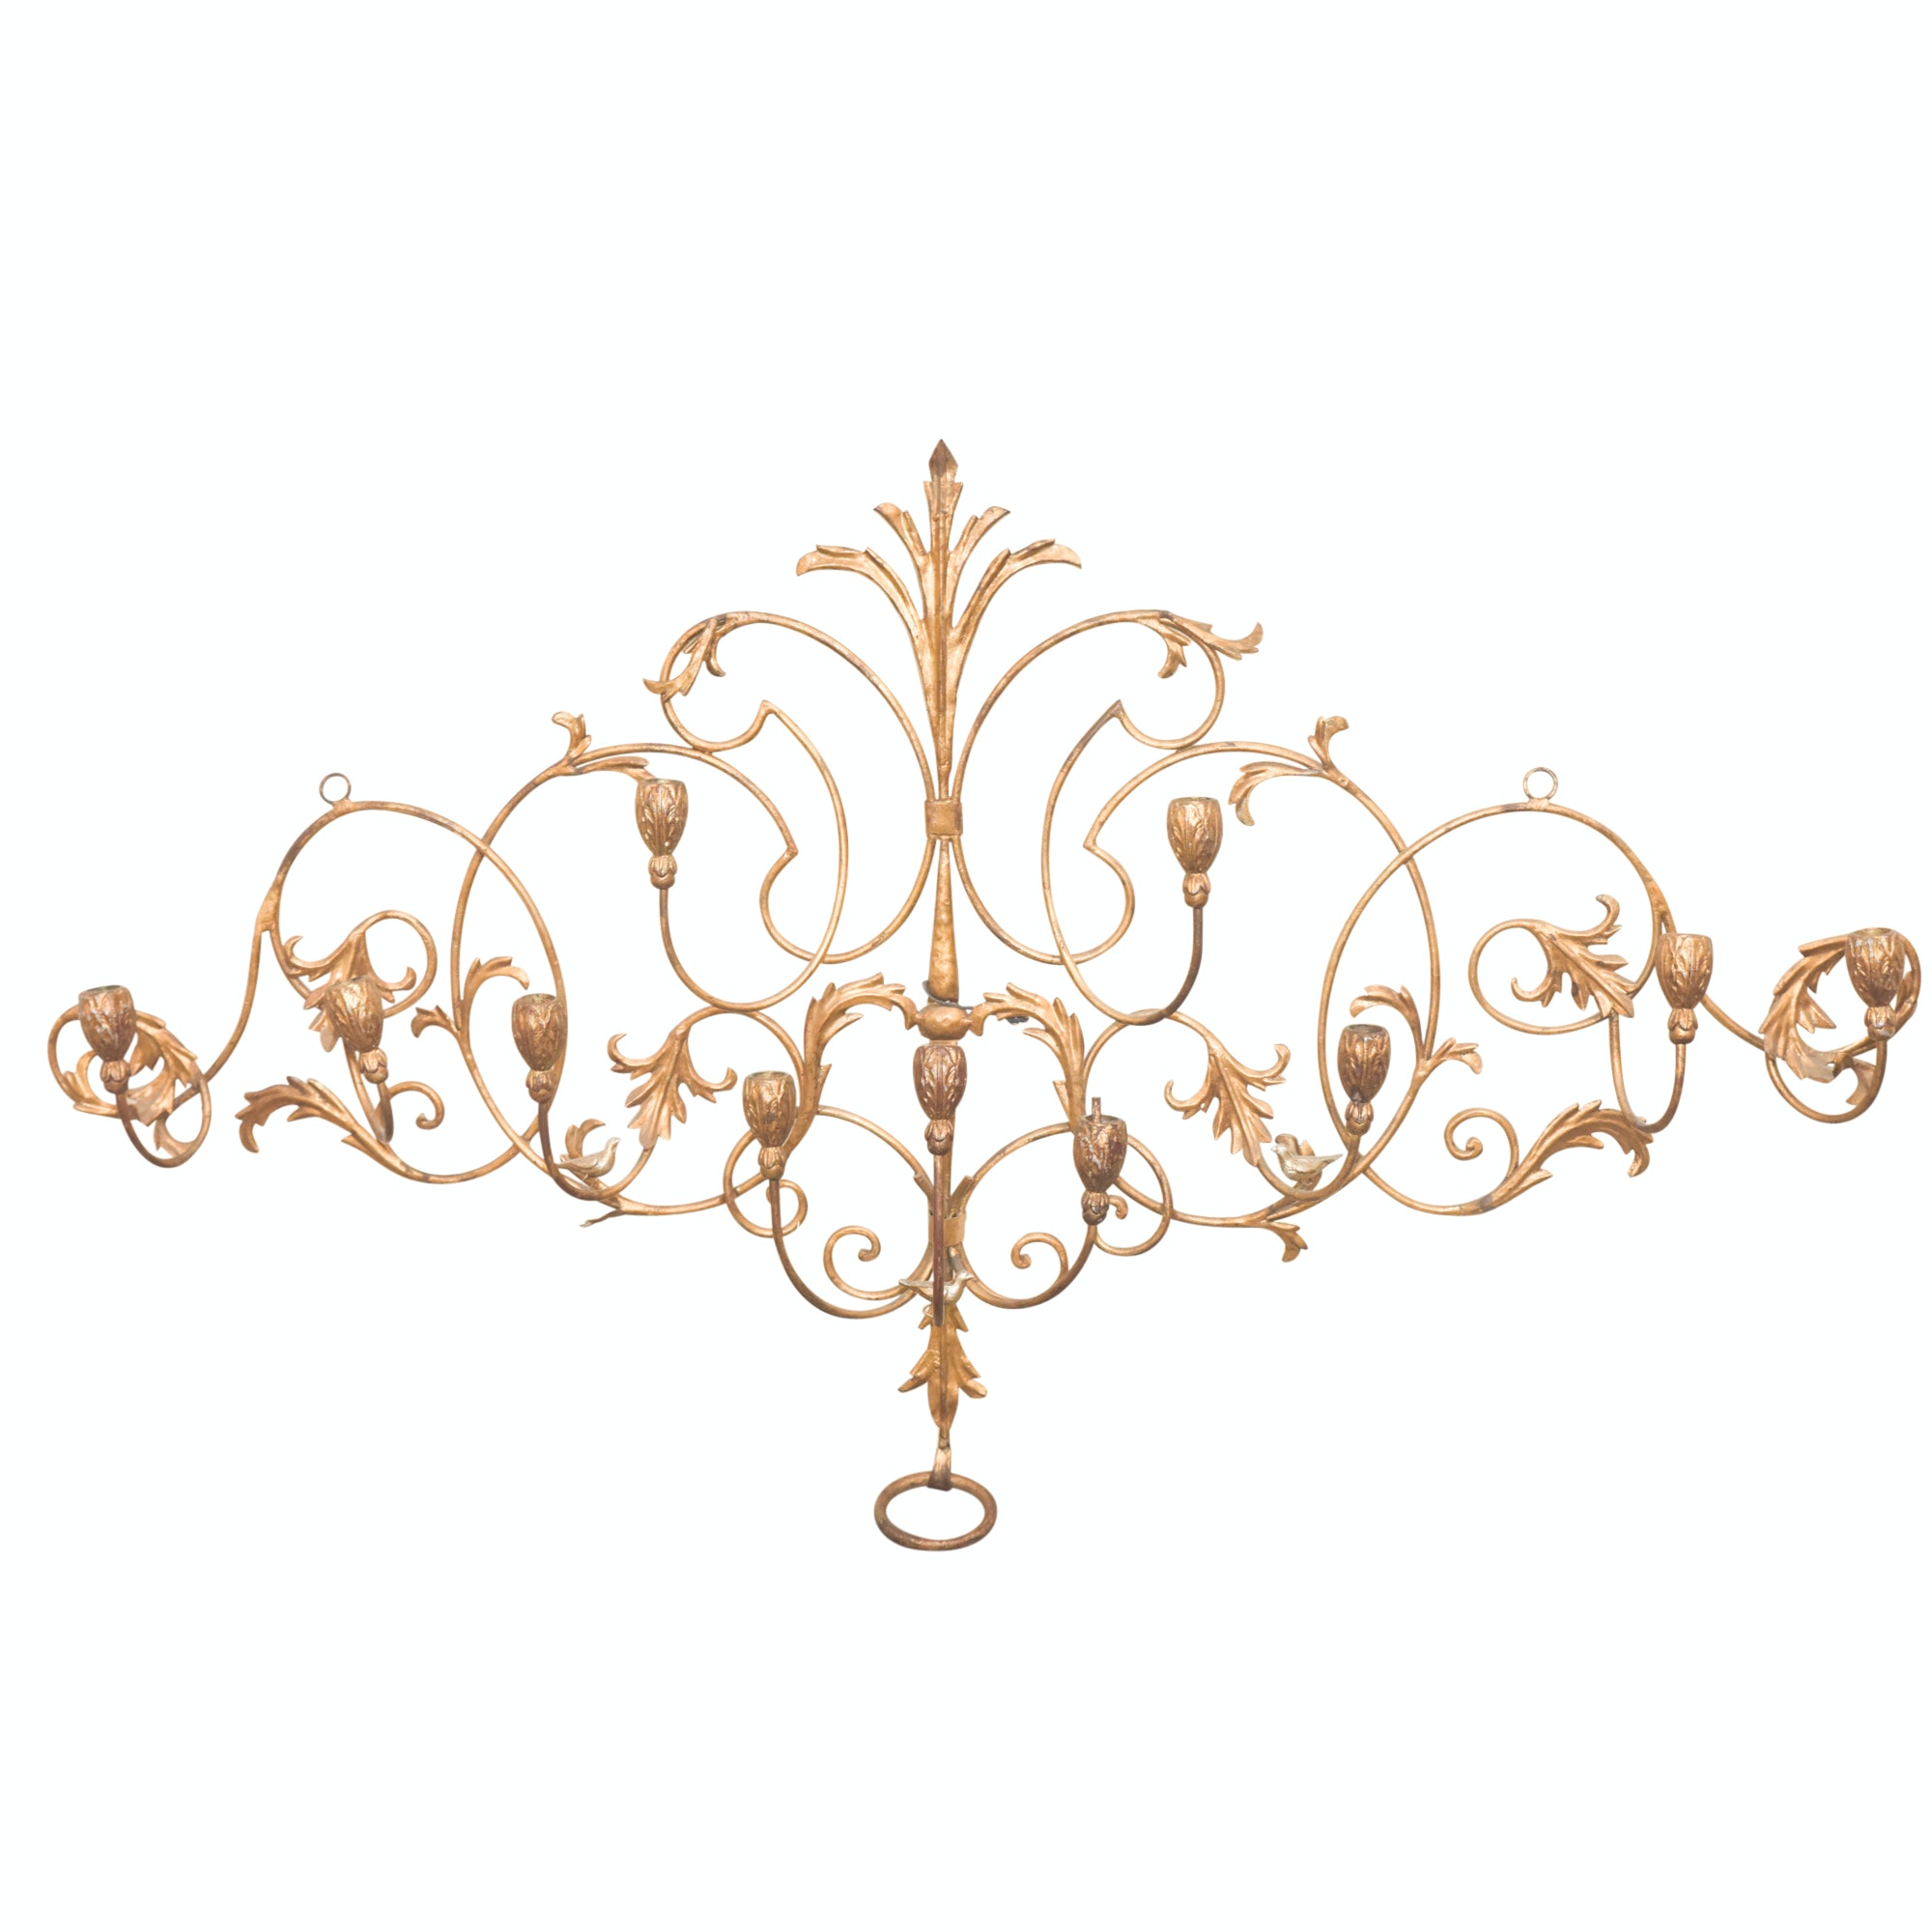 Brass Finished Tole Candle Sconce